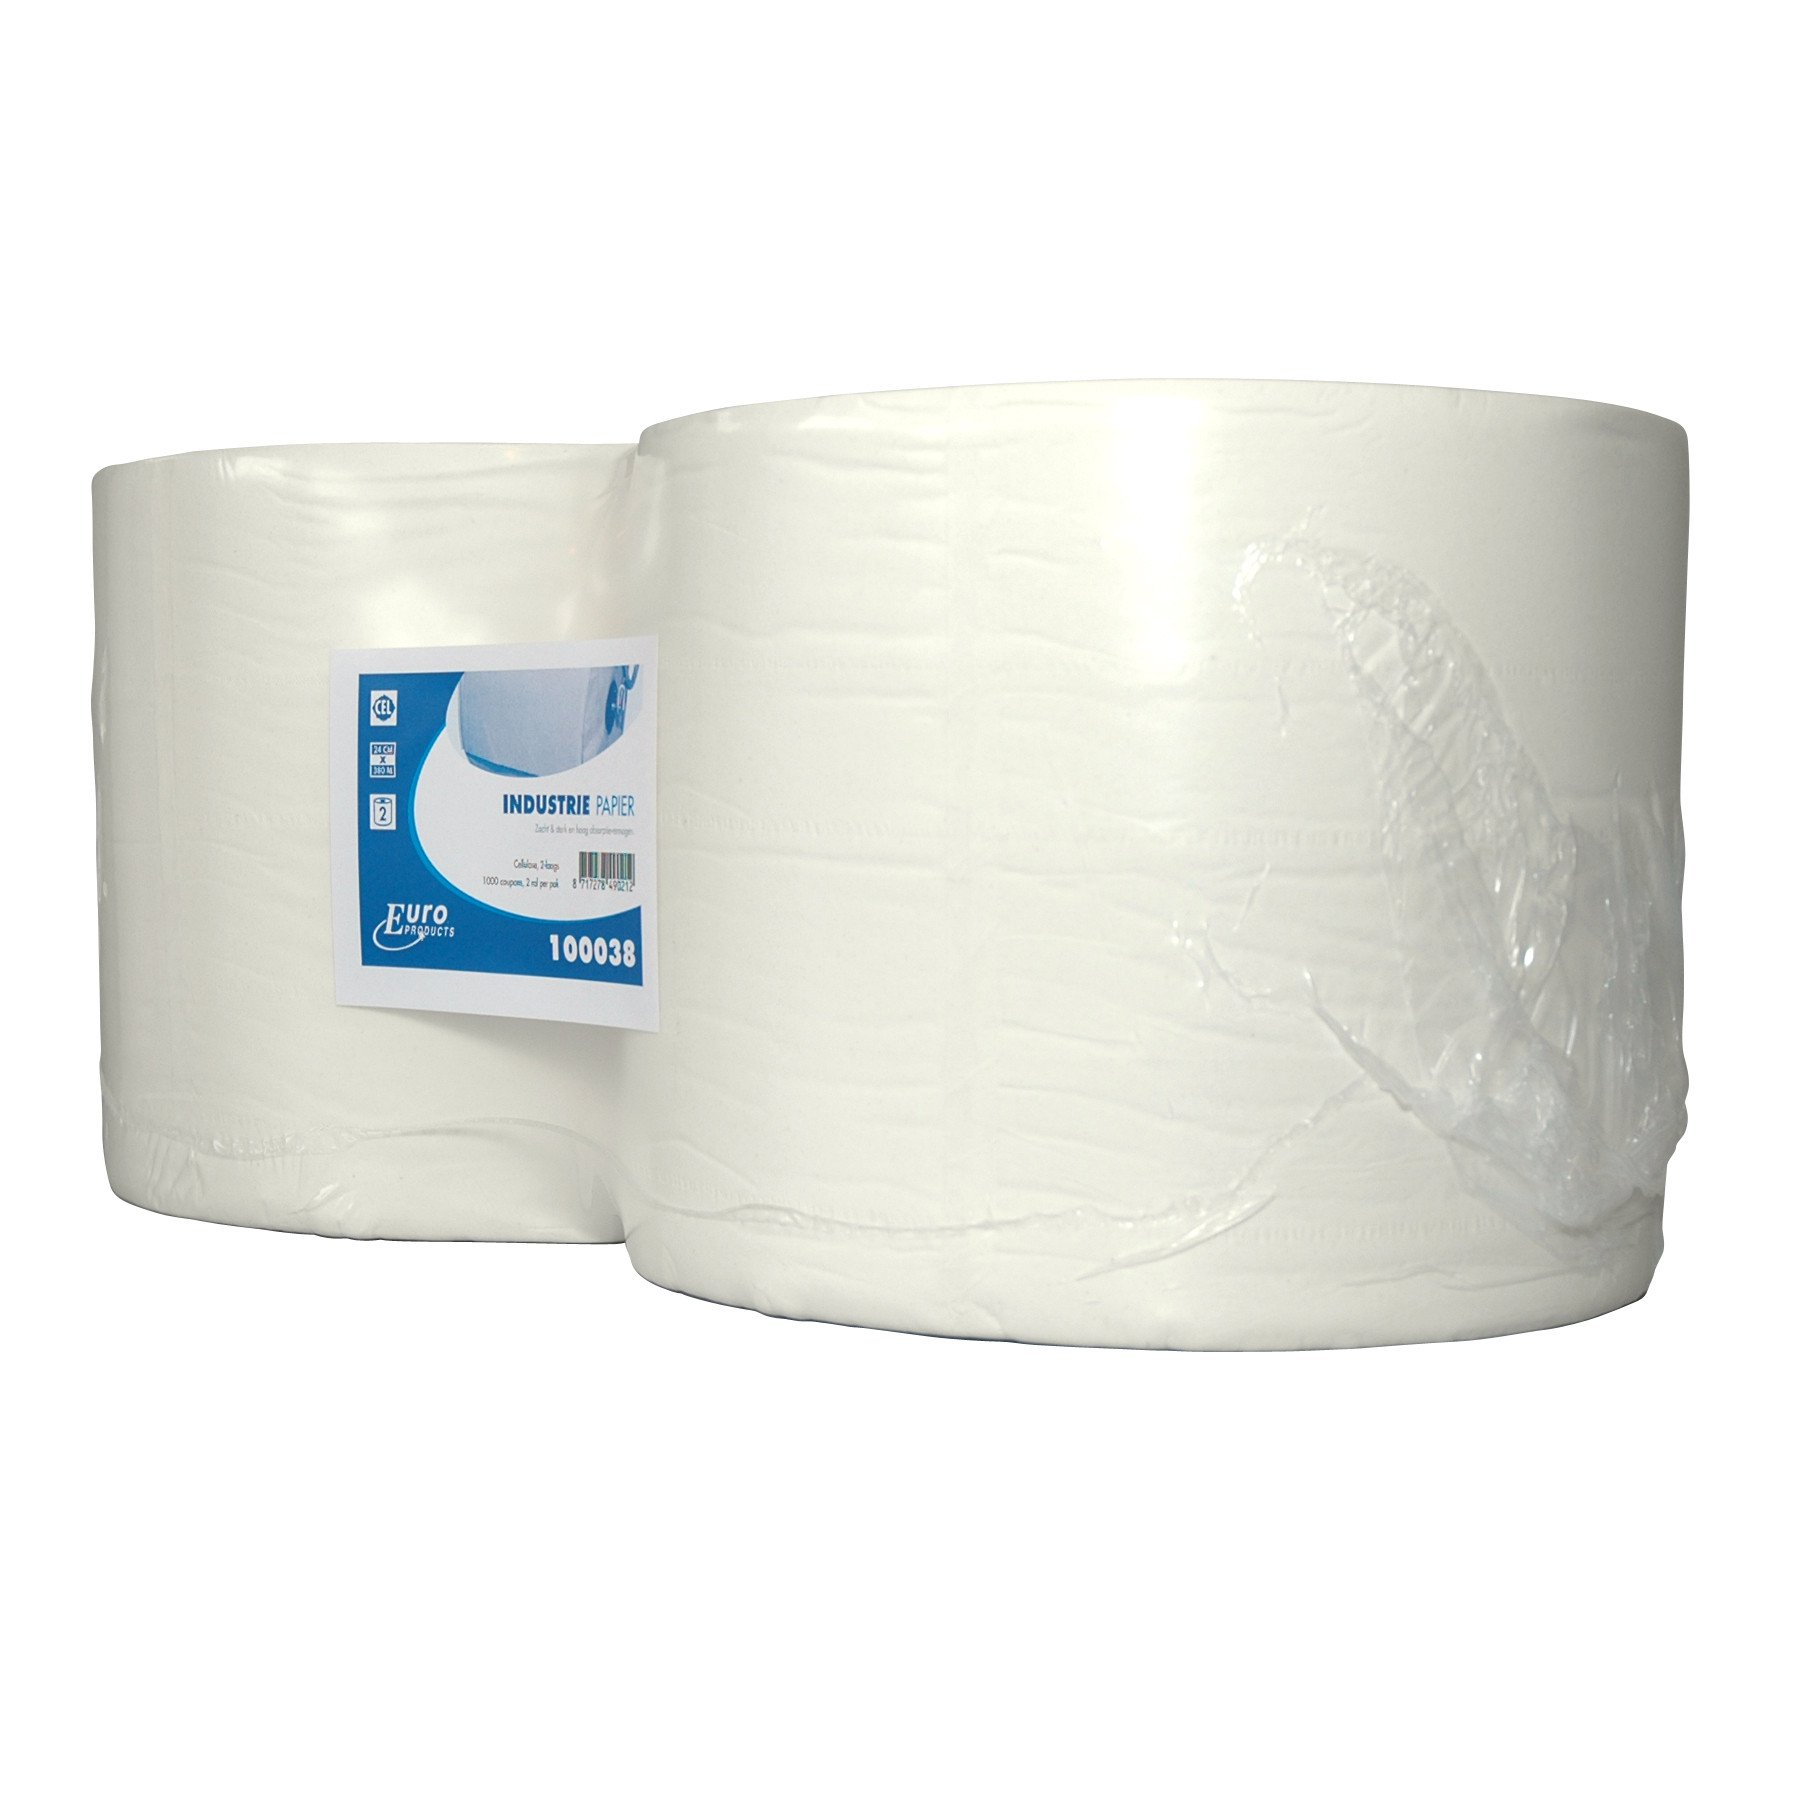 Euro Products | Industriepapier | Cellulose 2-laags | 2 x 380 meter